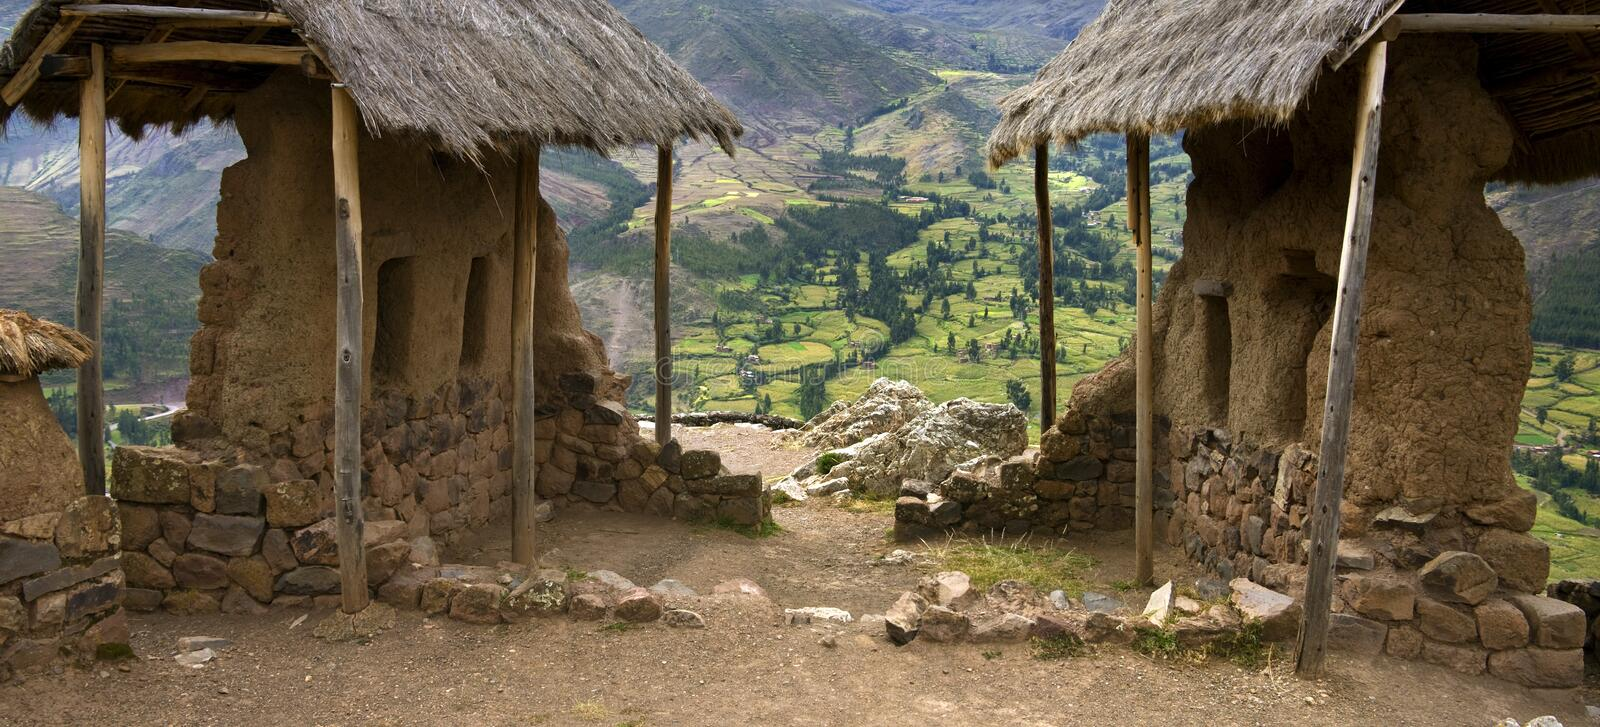 Qantus Raqay - Sacred Valley of the Incas - Peru royalty free stock images